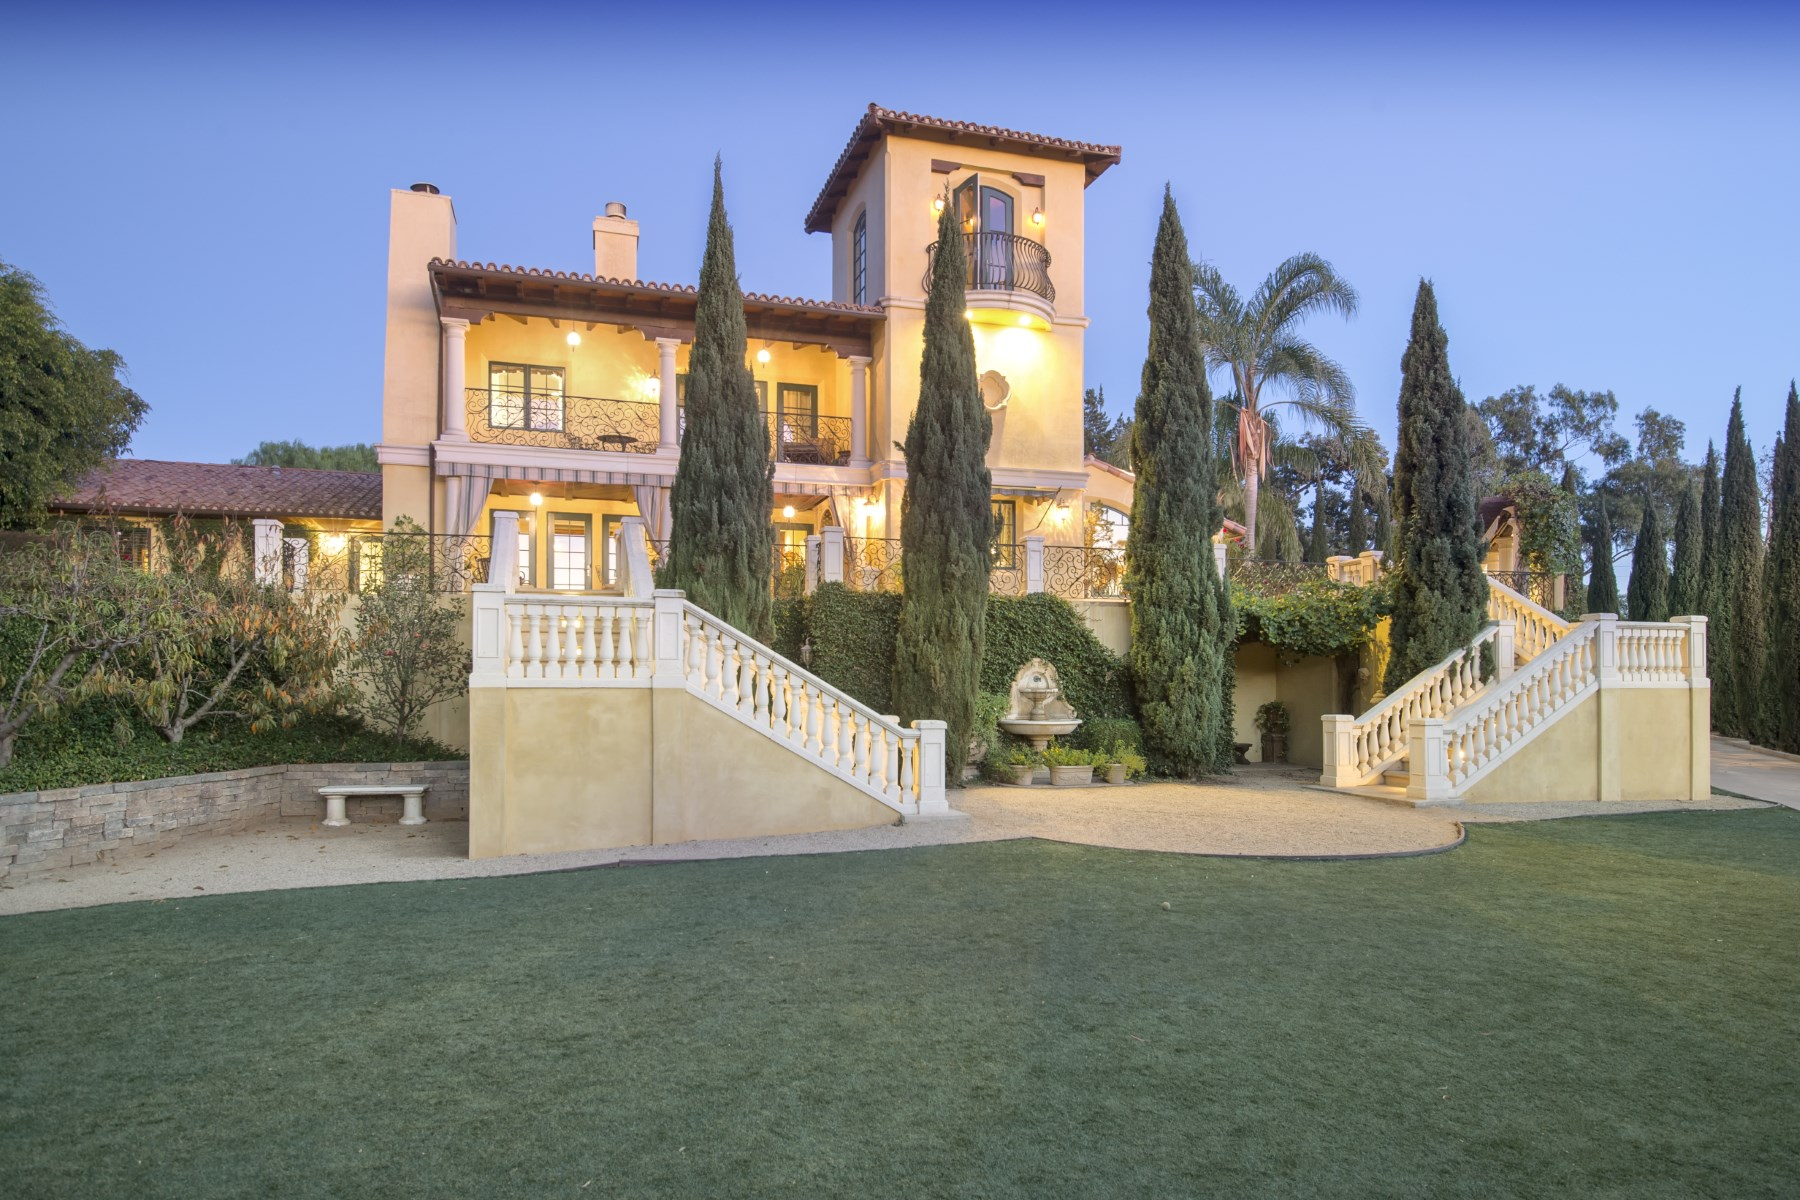 Property For Sale at Exquisite Villa Damian Vance